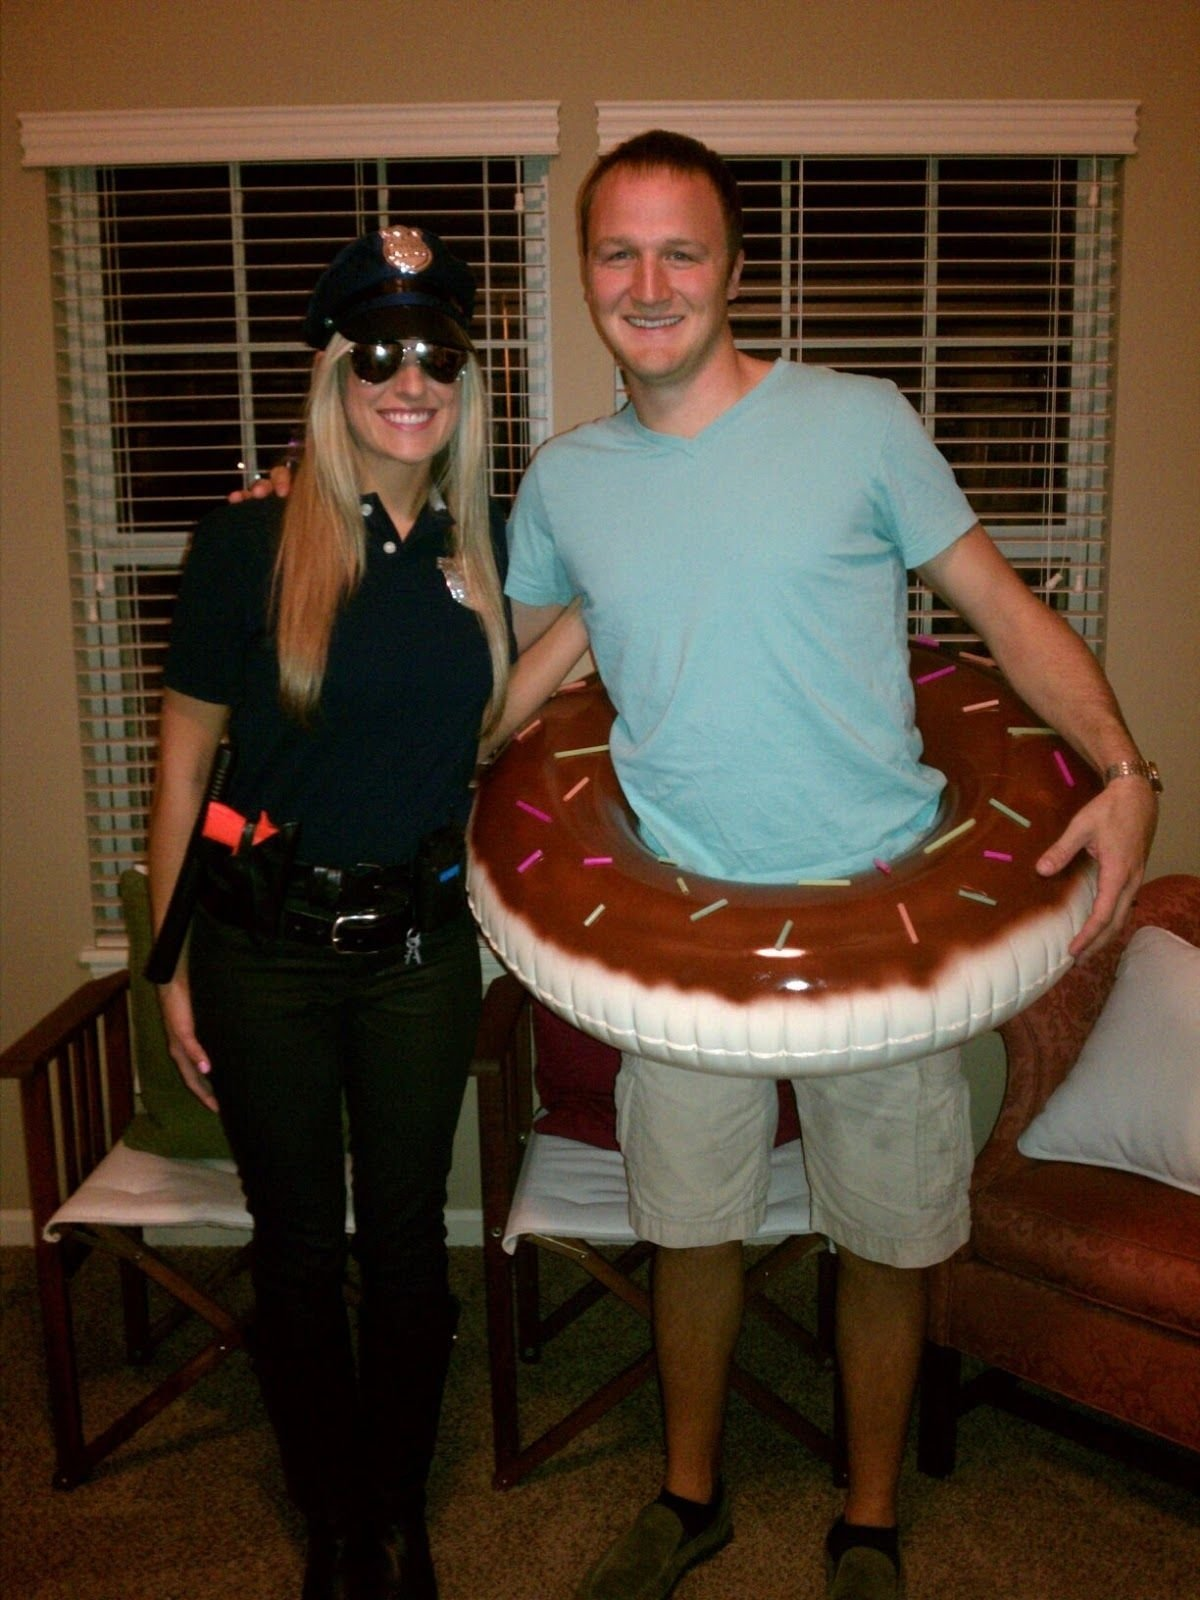 10 Ideal Funny Homemade Halloween Costume Ideas For Adults cop and donut tired of the sexy  sc 1 st  Unique Ideas 2018 & 10 Ideal Funny Homemade Halloween Costume Ideas For Adults